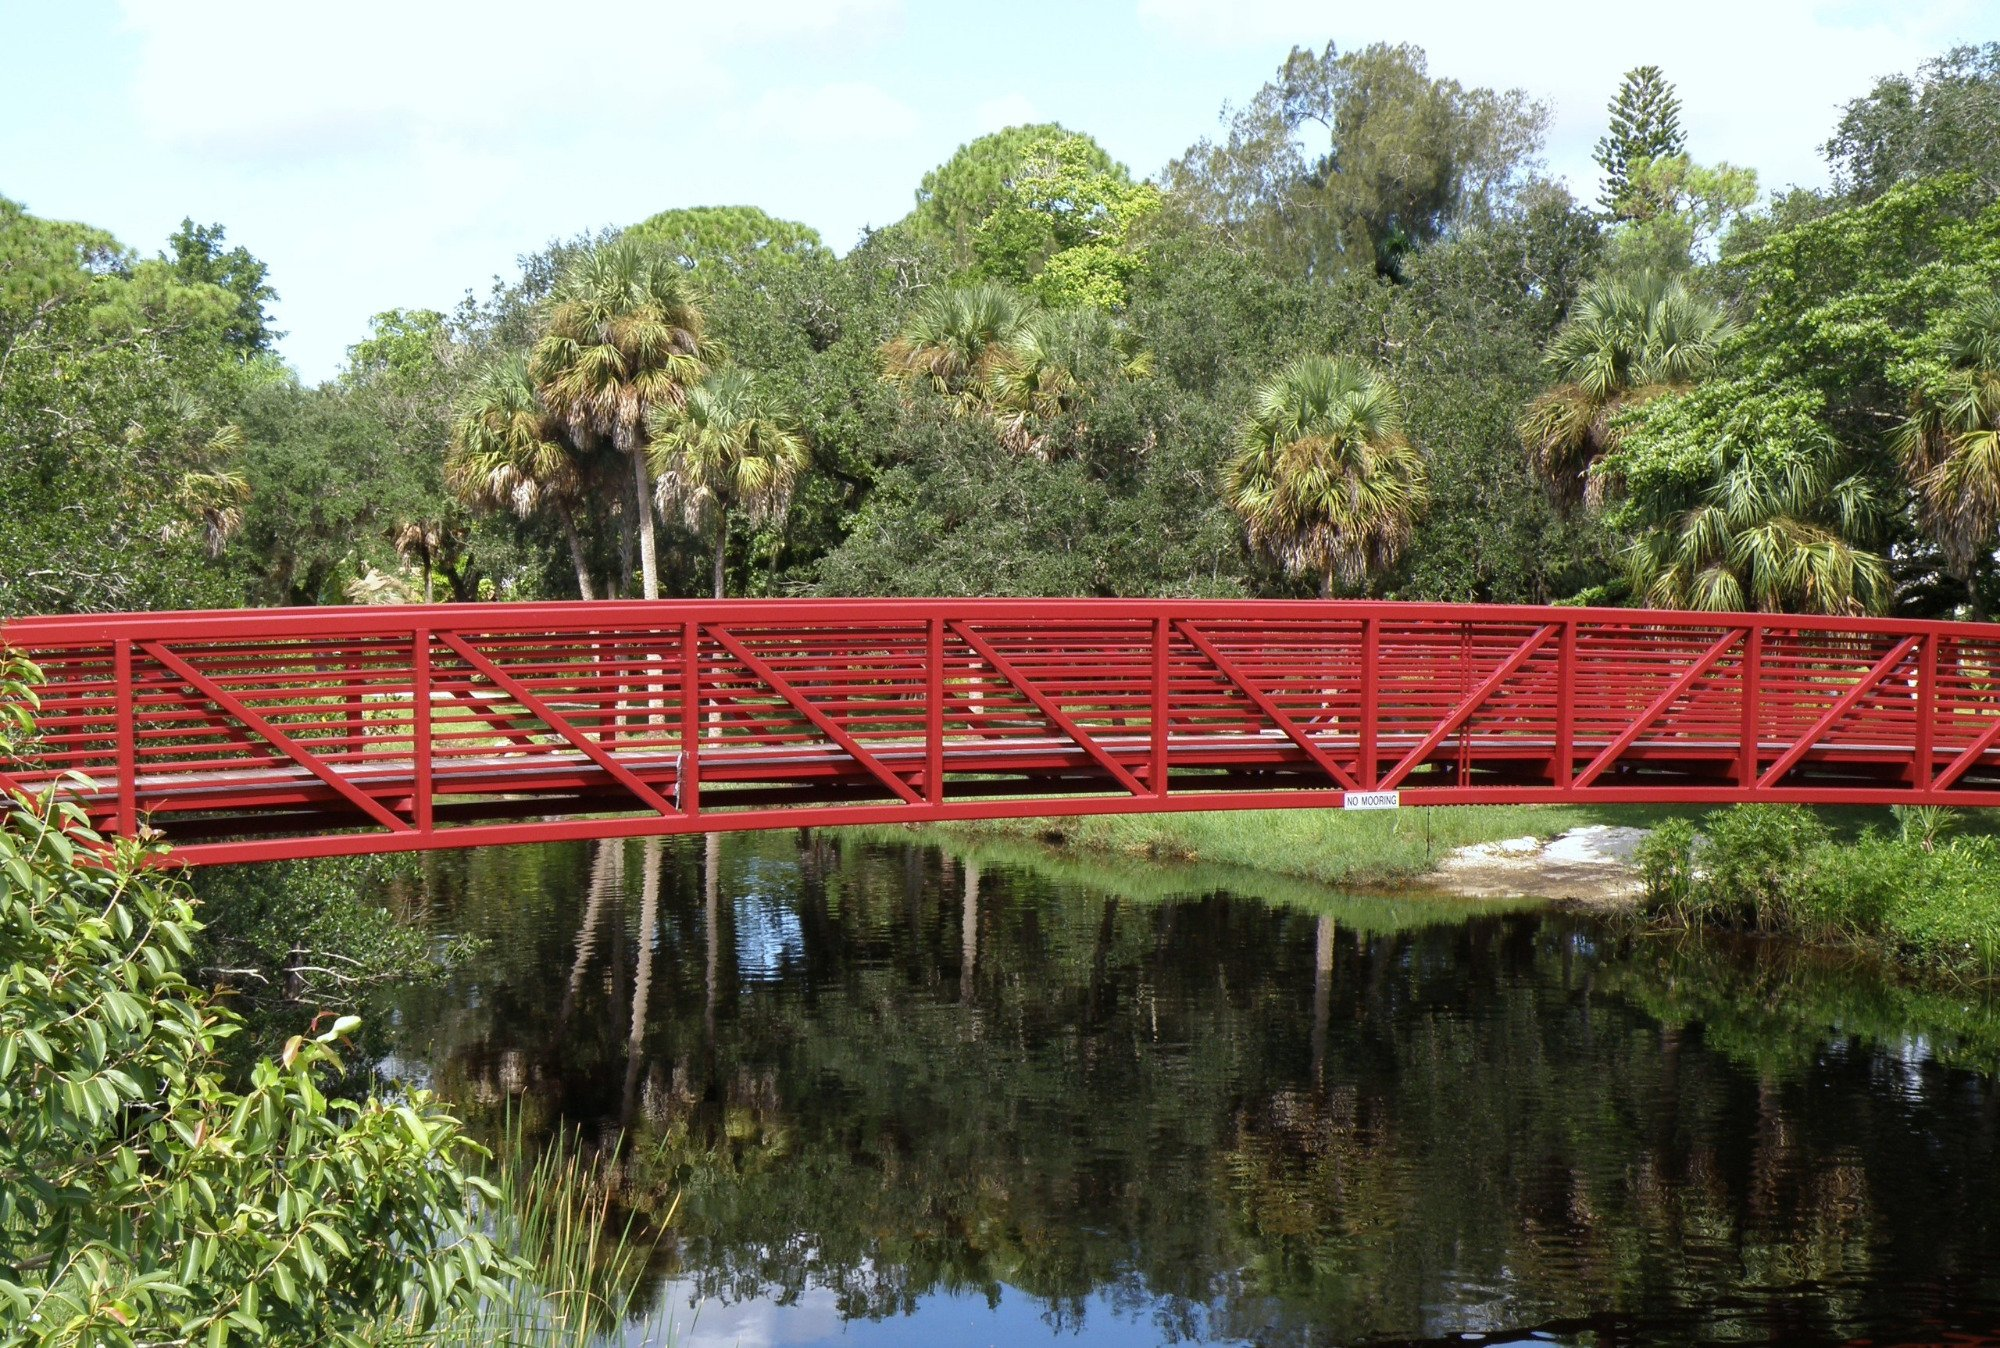 Riverside Park in Bonita Springs, FL